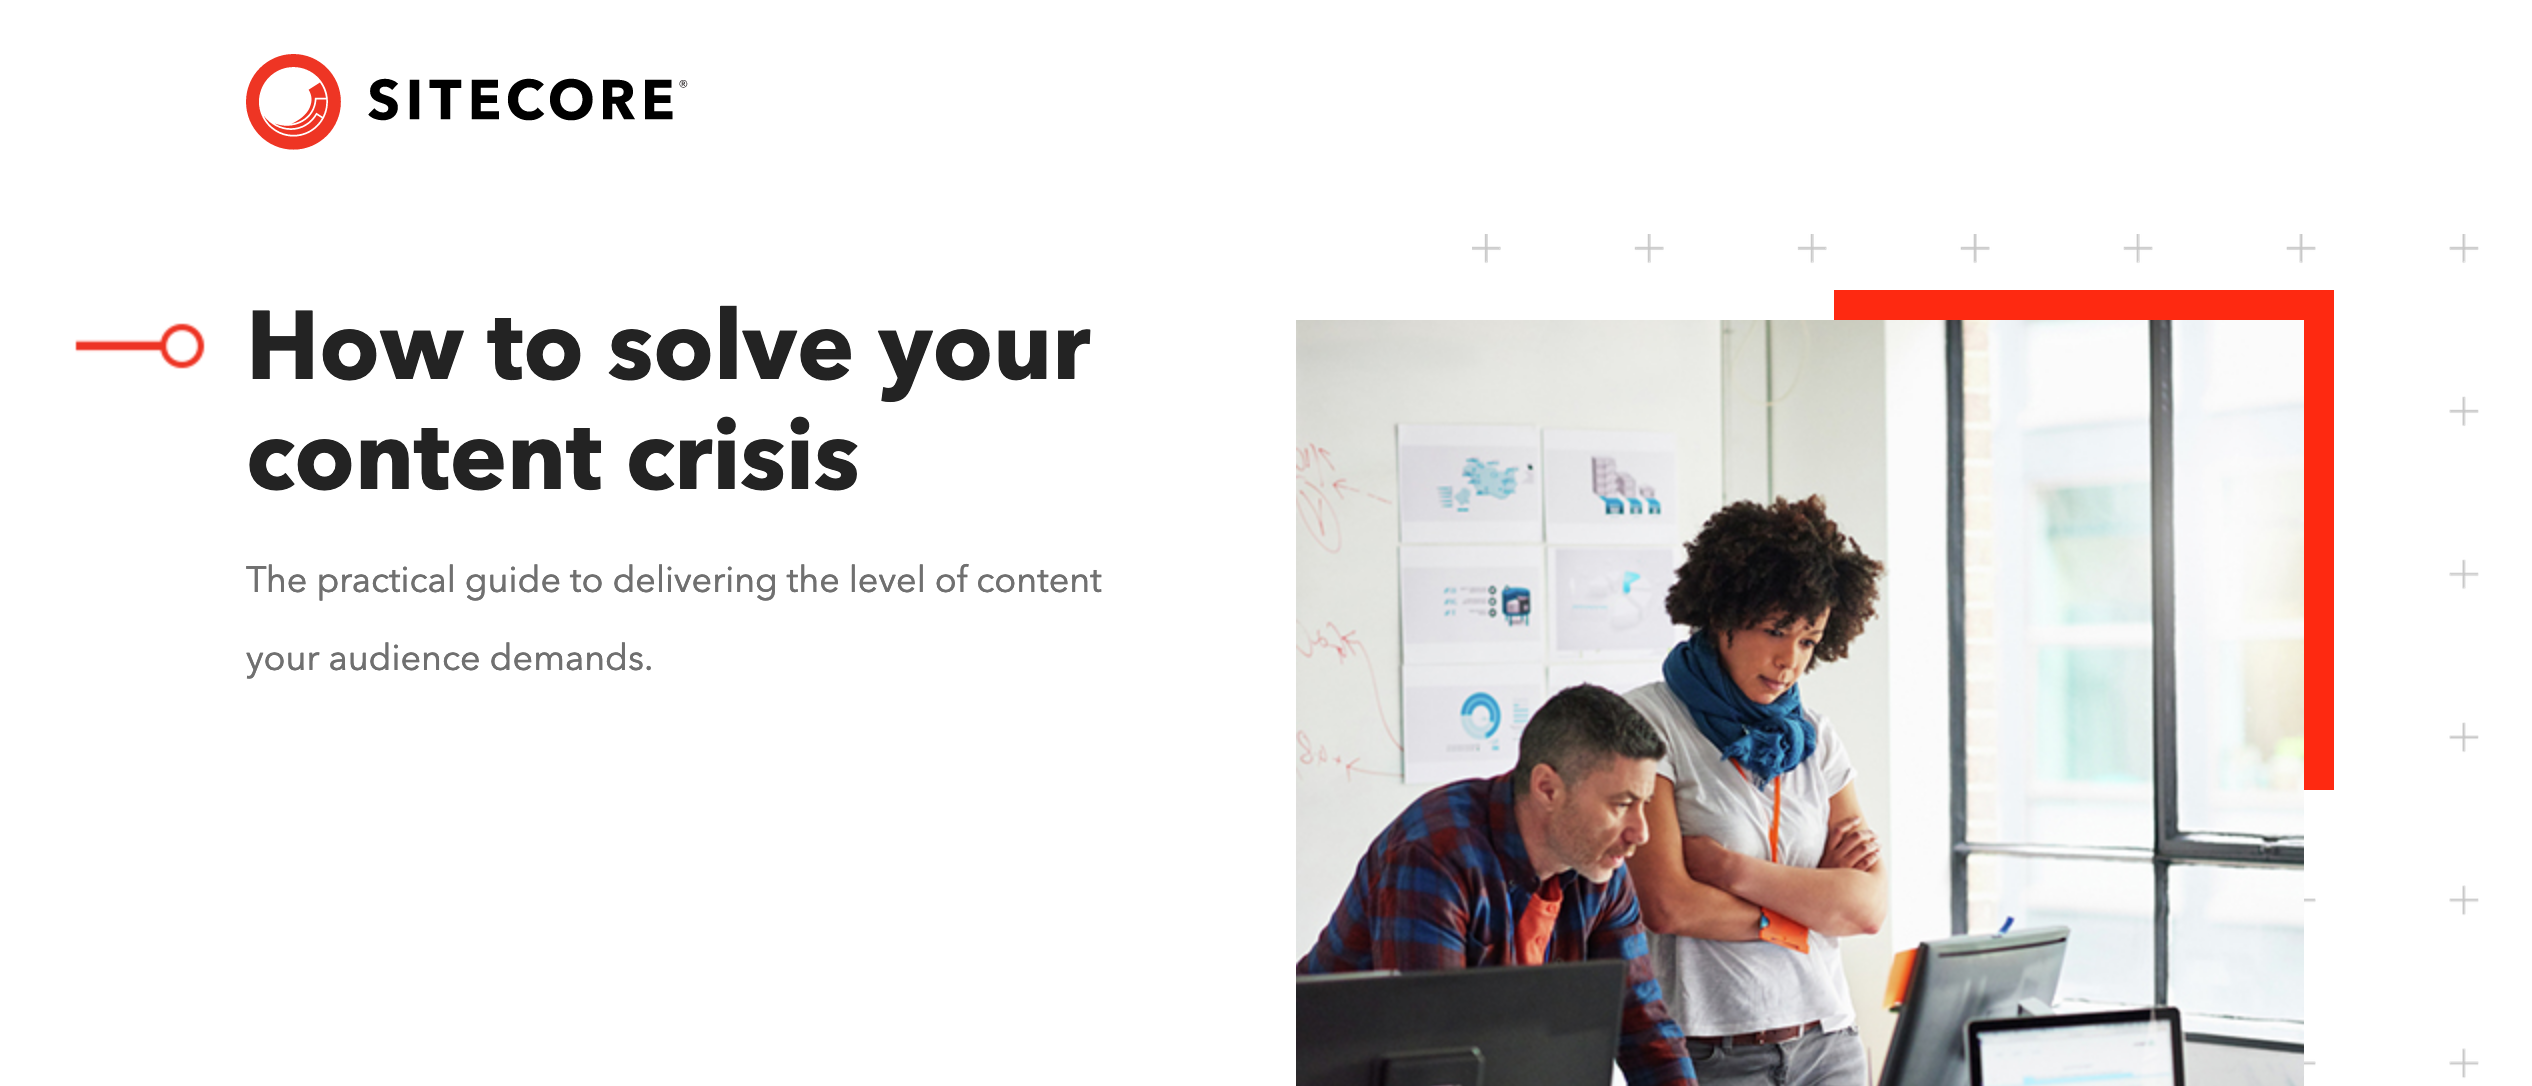 How to solve your content crisis - How to solve your content crisis